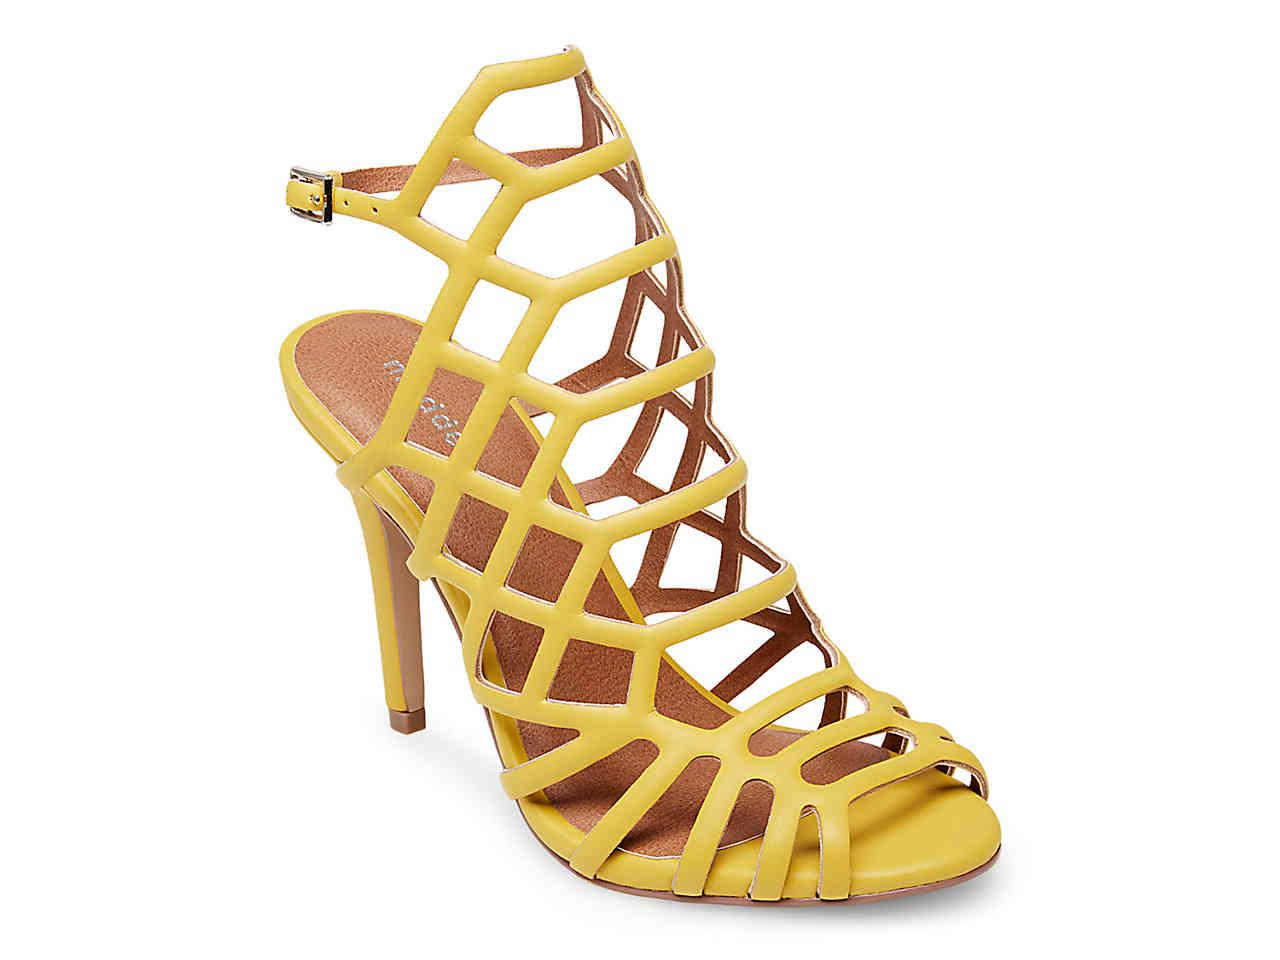 Madden Girl Direct Sandal in Yellow - Lyst